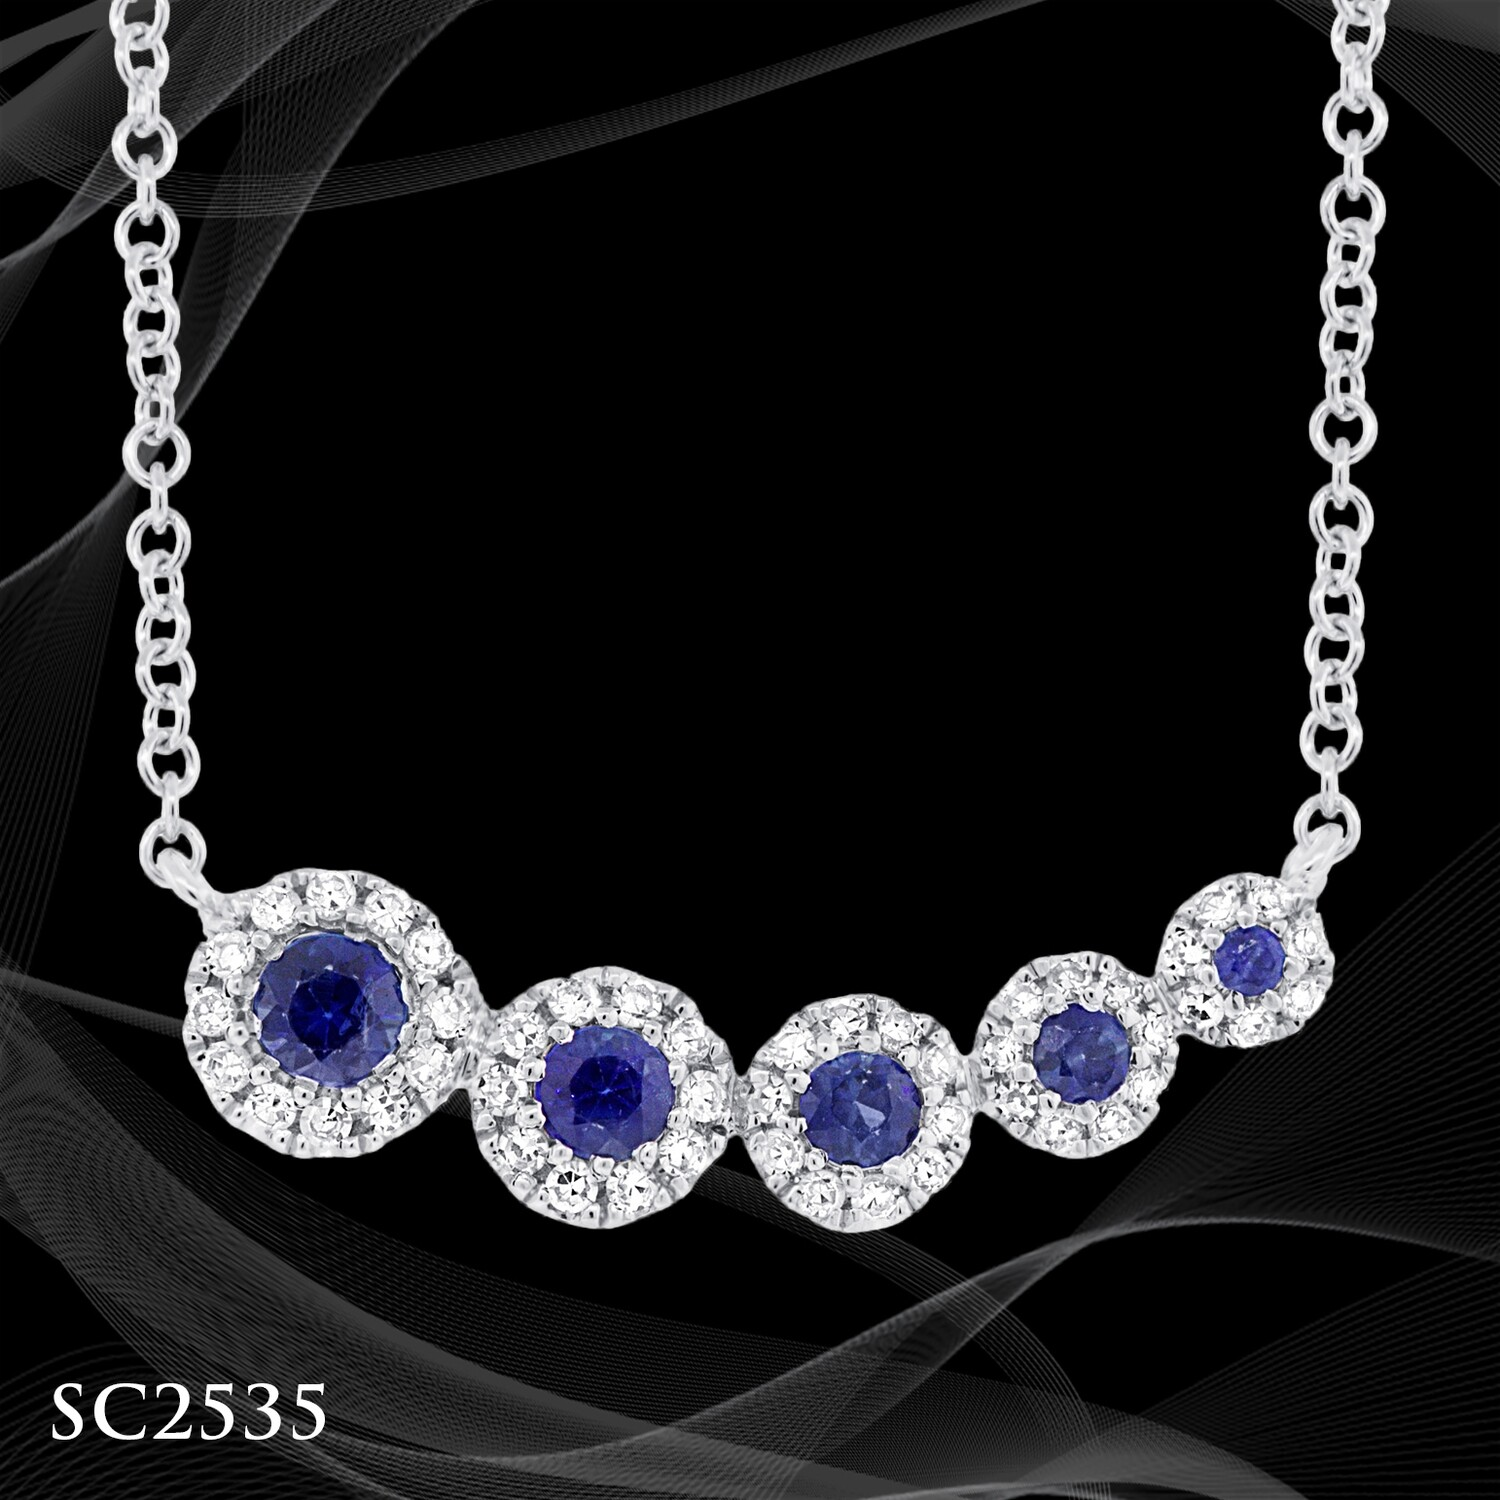 14 Karat White Gold Diamond and Sapphire Pendant